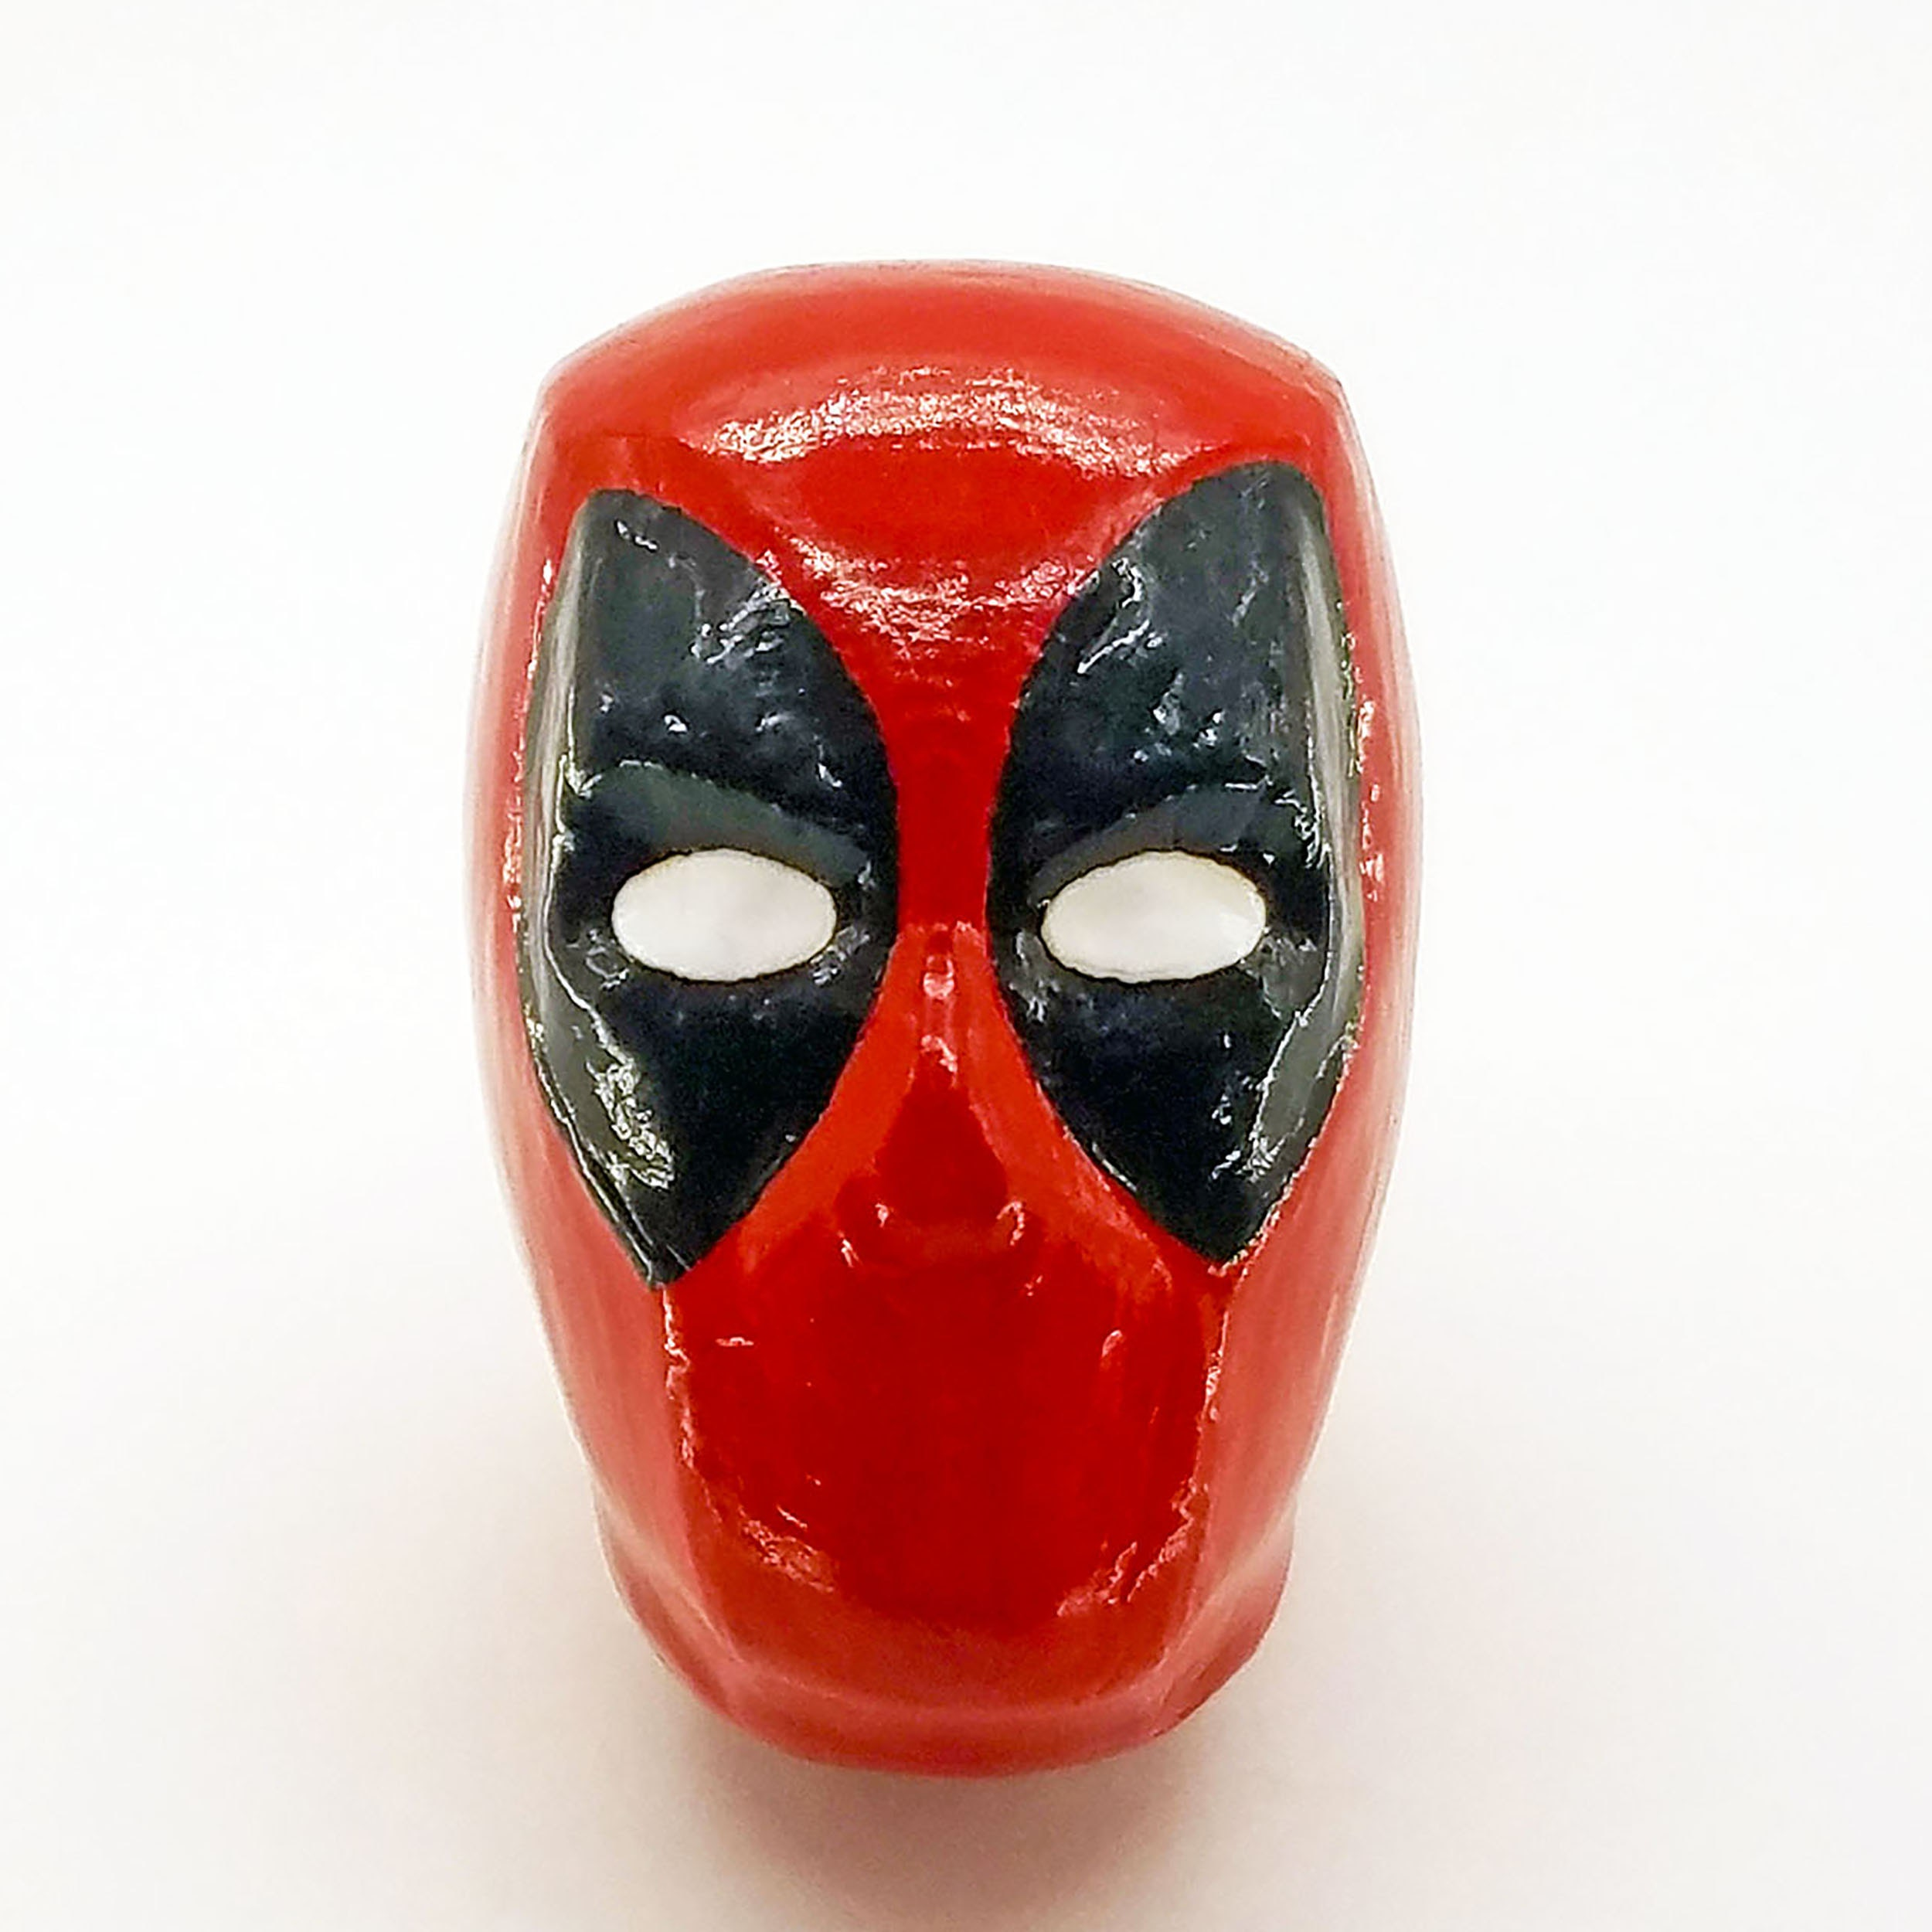 Deadpool Furniture Knob compatible with dressers, drawers, cabinets, closets / Marvel Superhero Decor for bedroom, living room, bathroom, kitchen